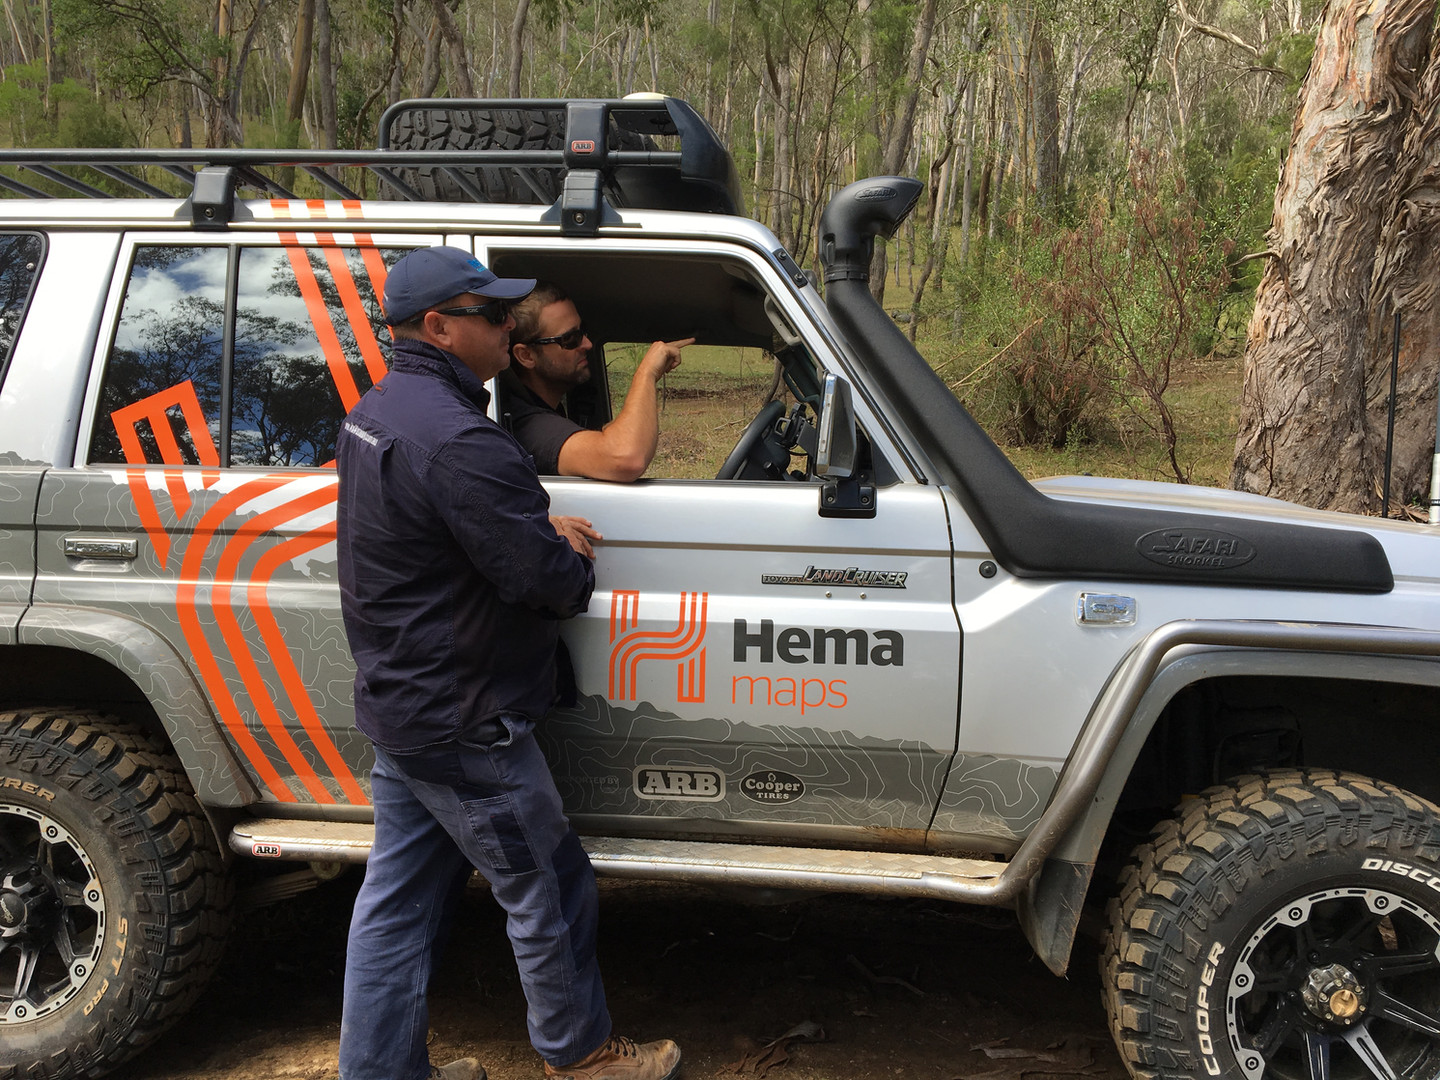 Offroad driving with Hema Maps